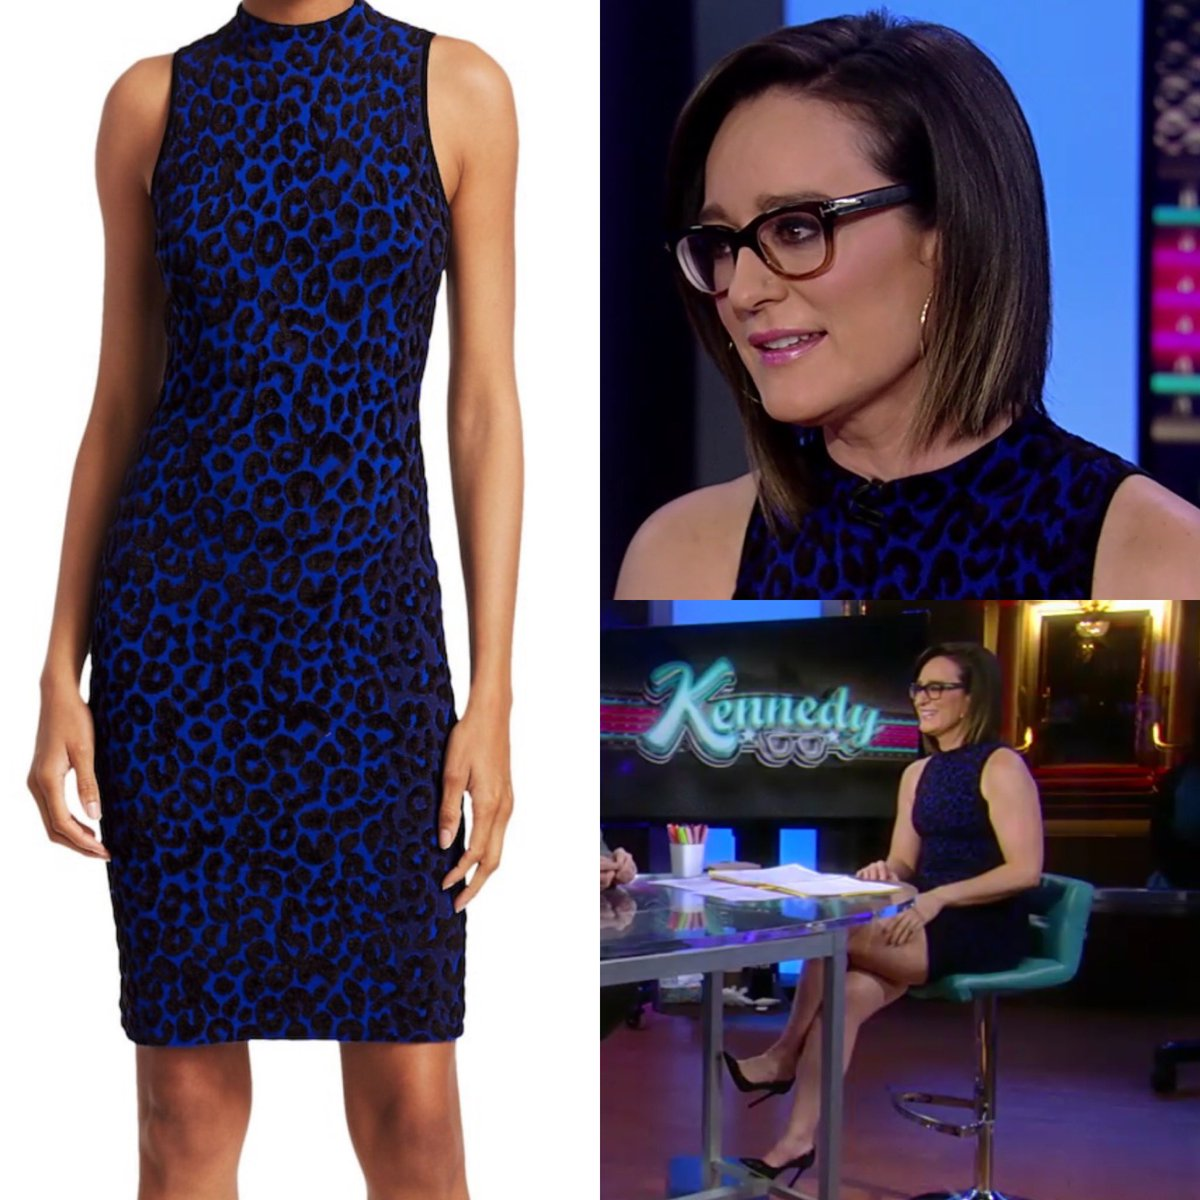 Kennedy (@KennedyNation) appears to have worn a Milly Blue Cheetah Bodycon dress tonight on #Kennedy - the dress is available at Saks.  #foxnews #foxnewsfashion #foxbusiness  https://www.instagram.com/p/B3-3X3IAkck/?igshid=rkbetl3mhhek …pic.twitter.com/U2nzf25Wmv